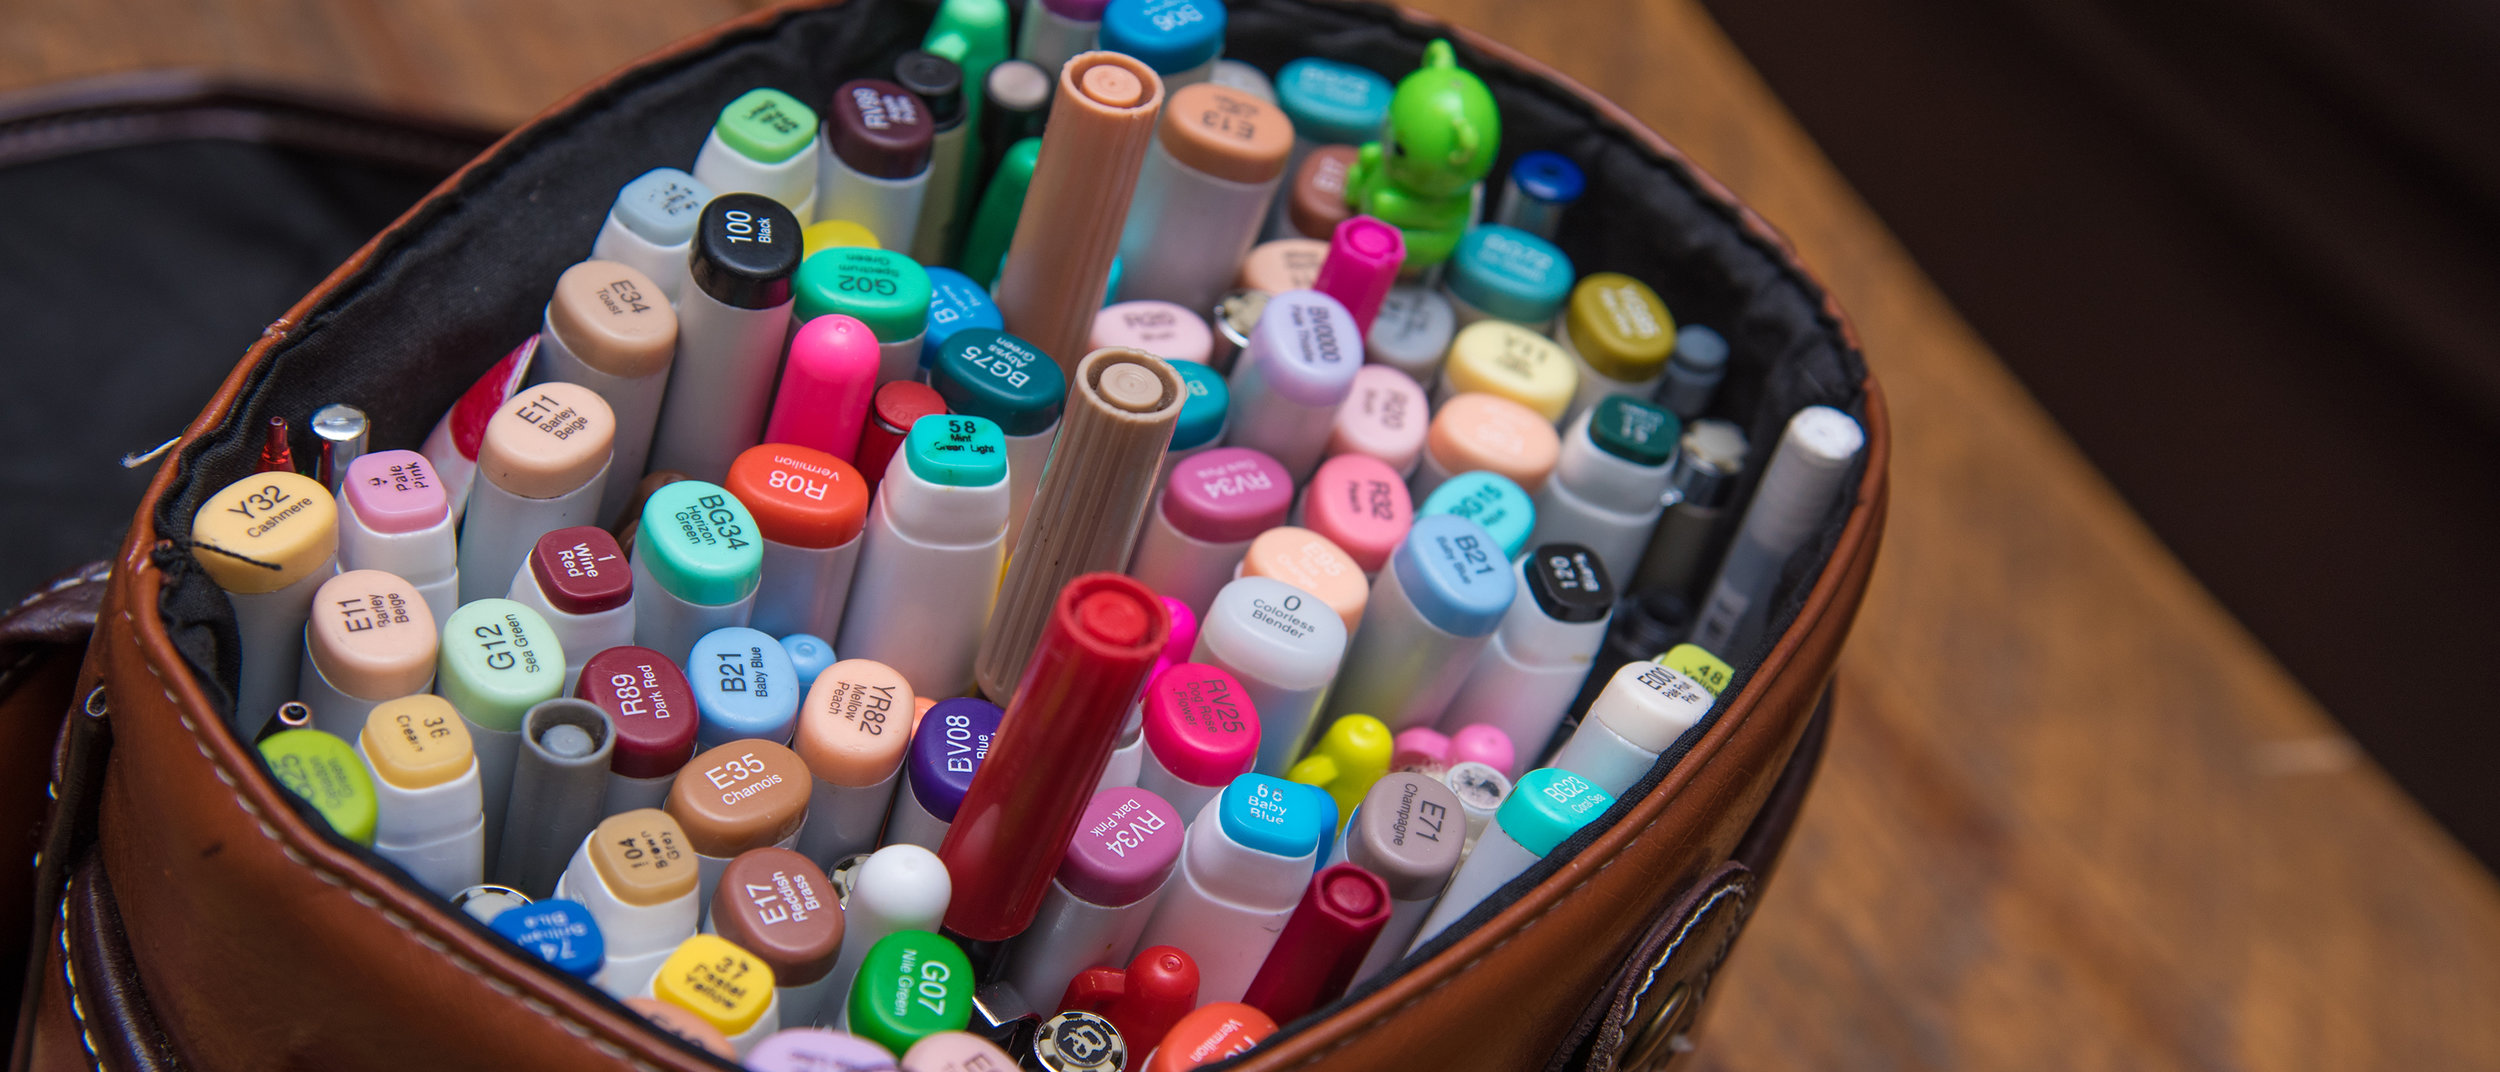 Her bag of markers. She carries this like a purse - anywhere and everywhere she goes.